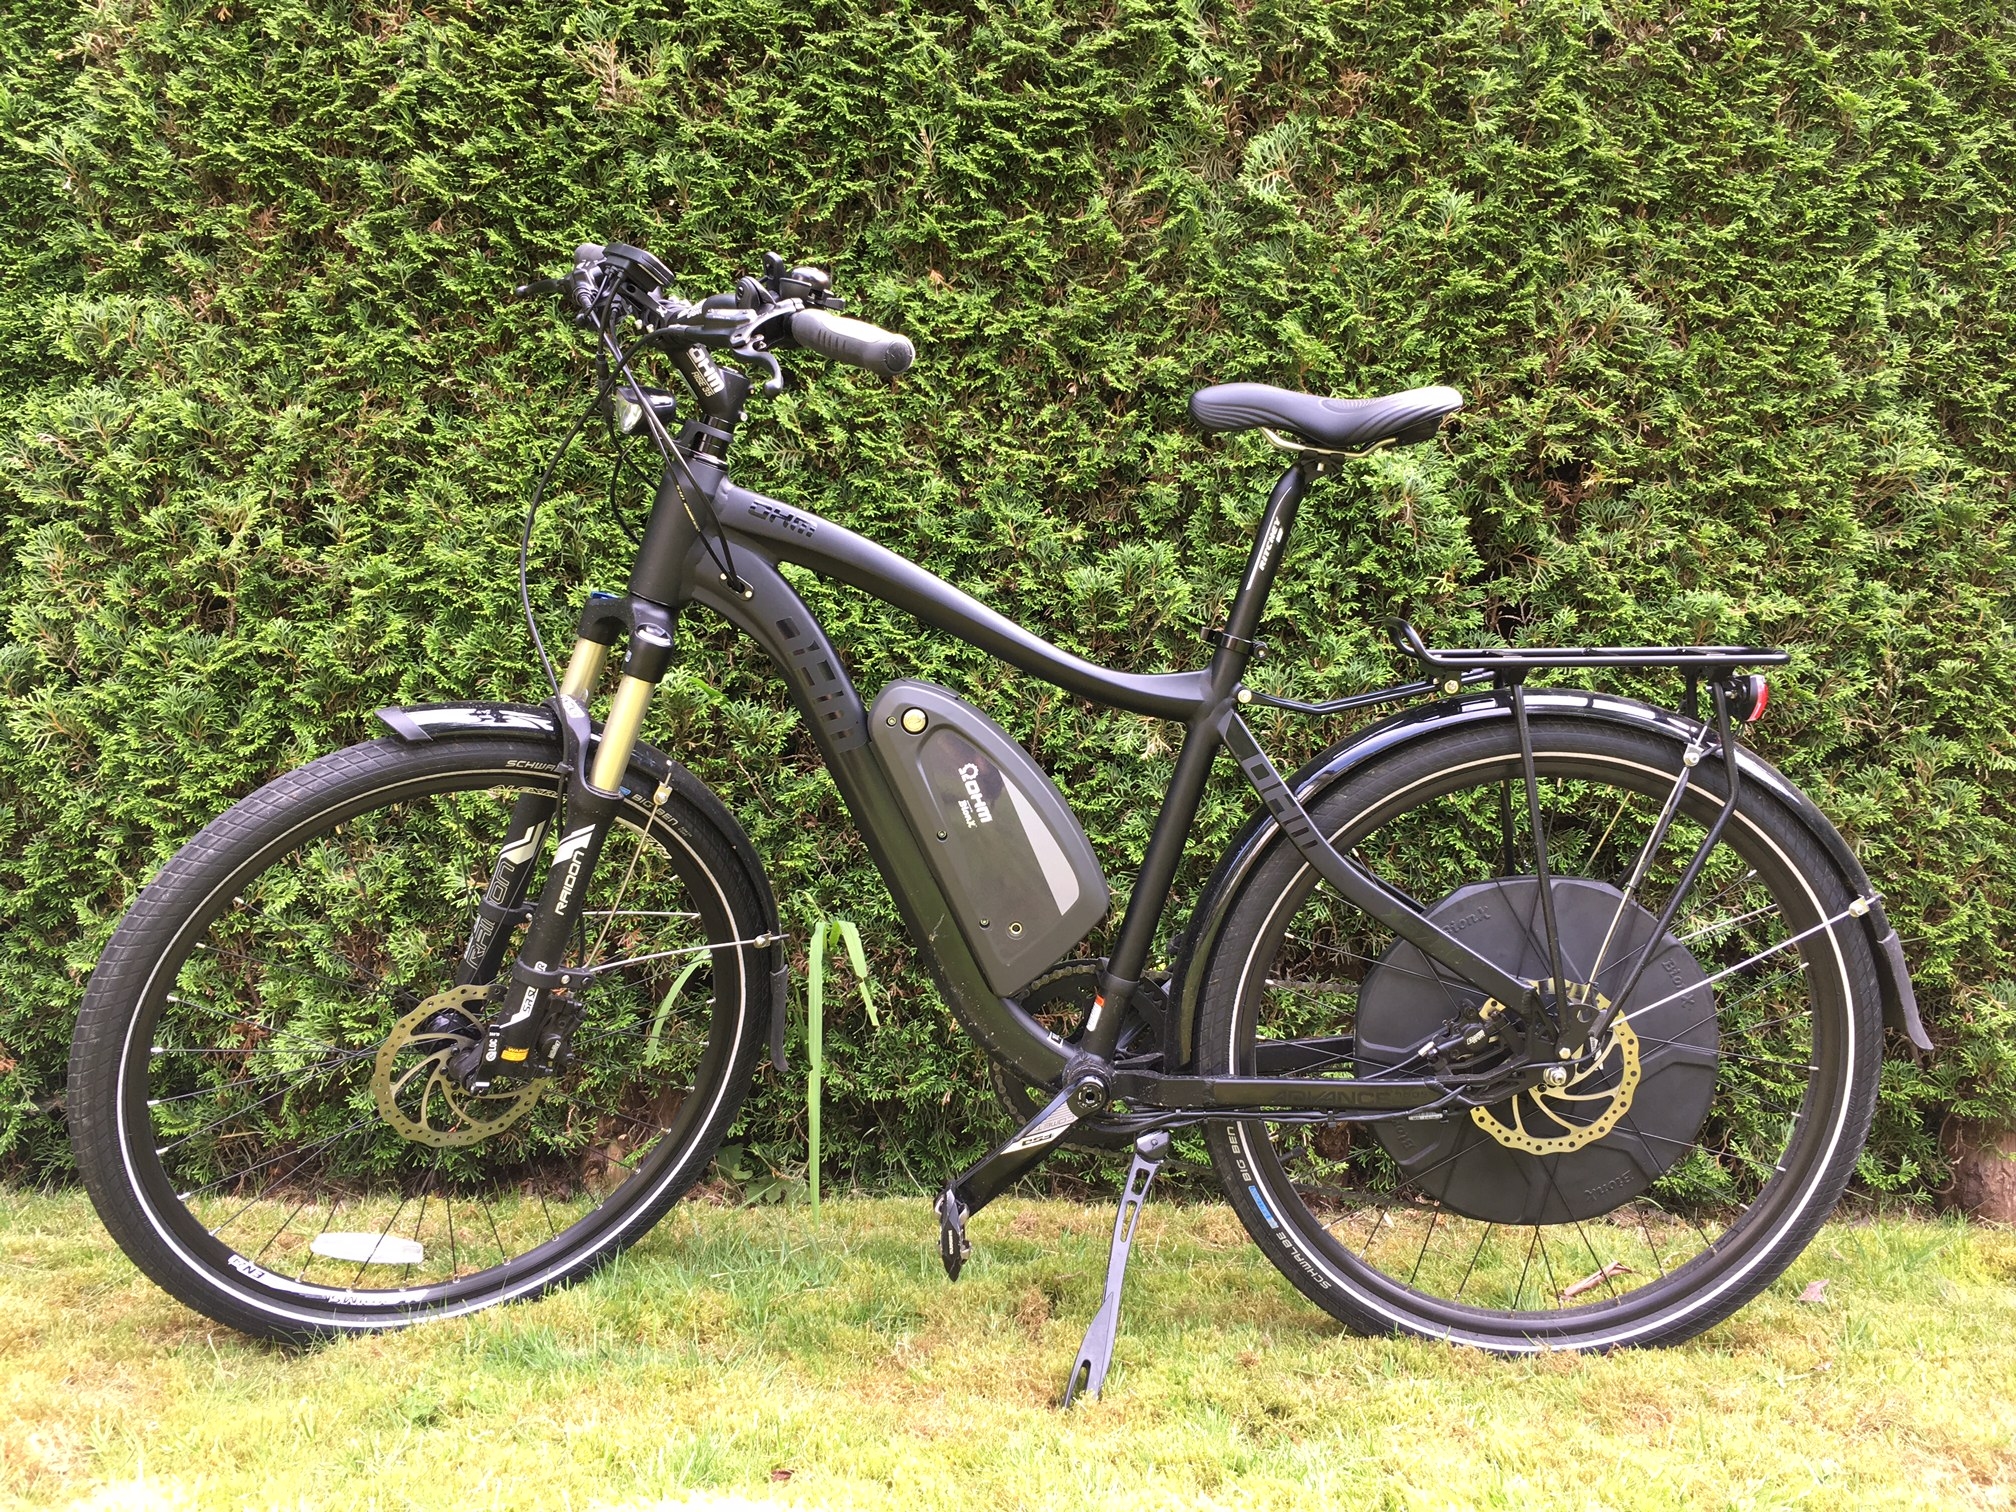 Ohm Bike Thoughts Impressions Electric Forum Q A Help Reviewaintenance